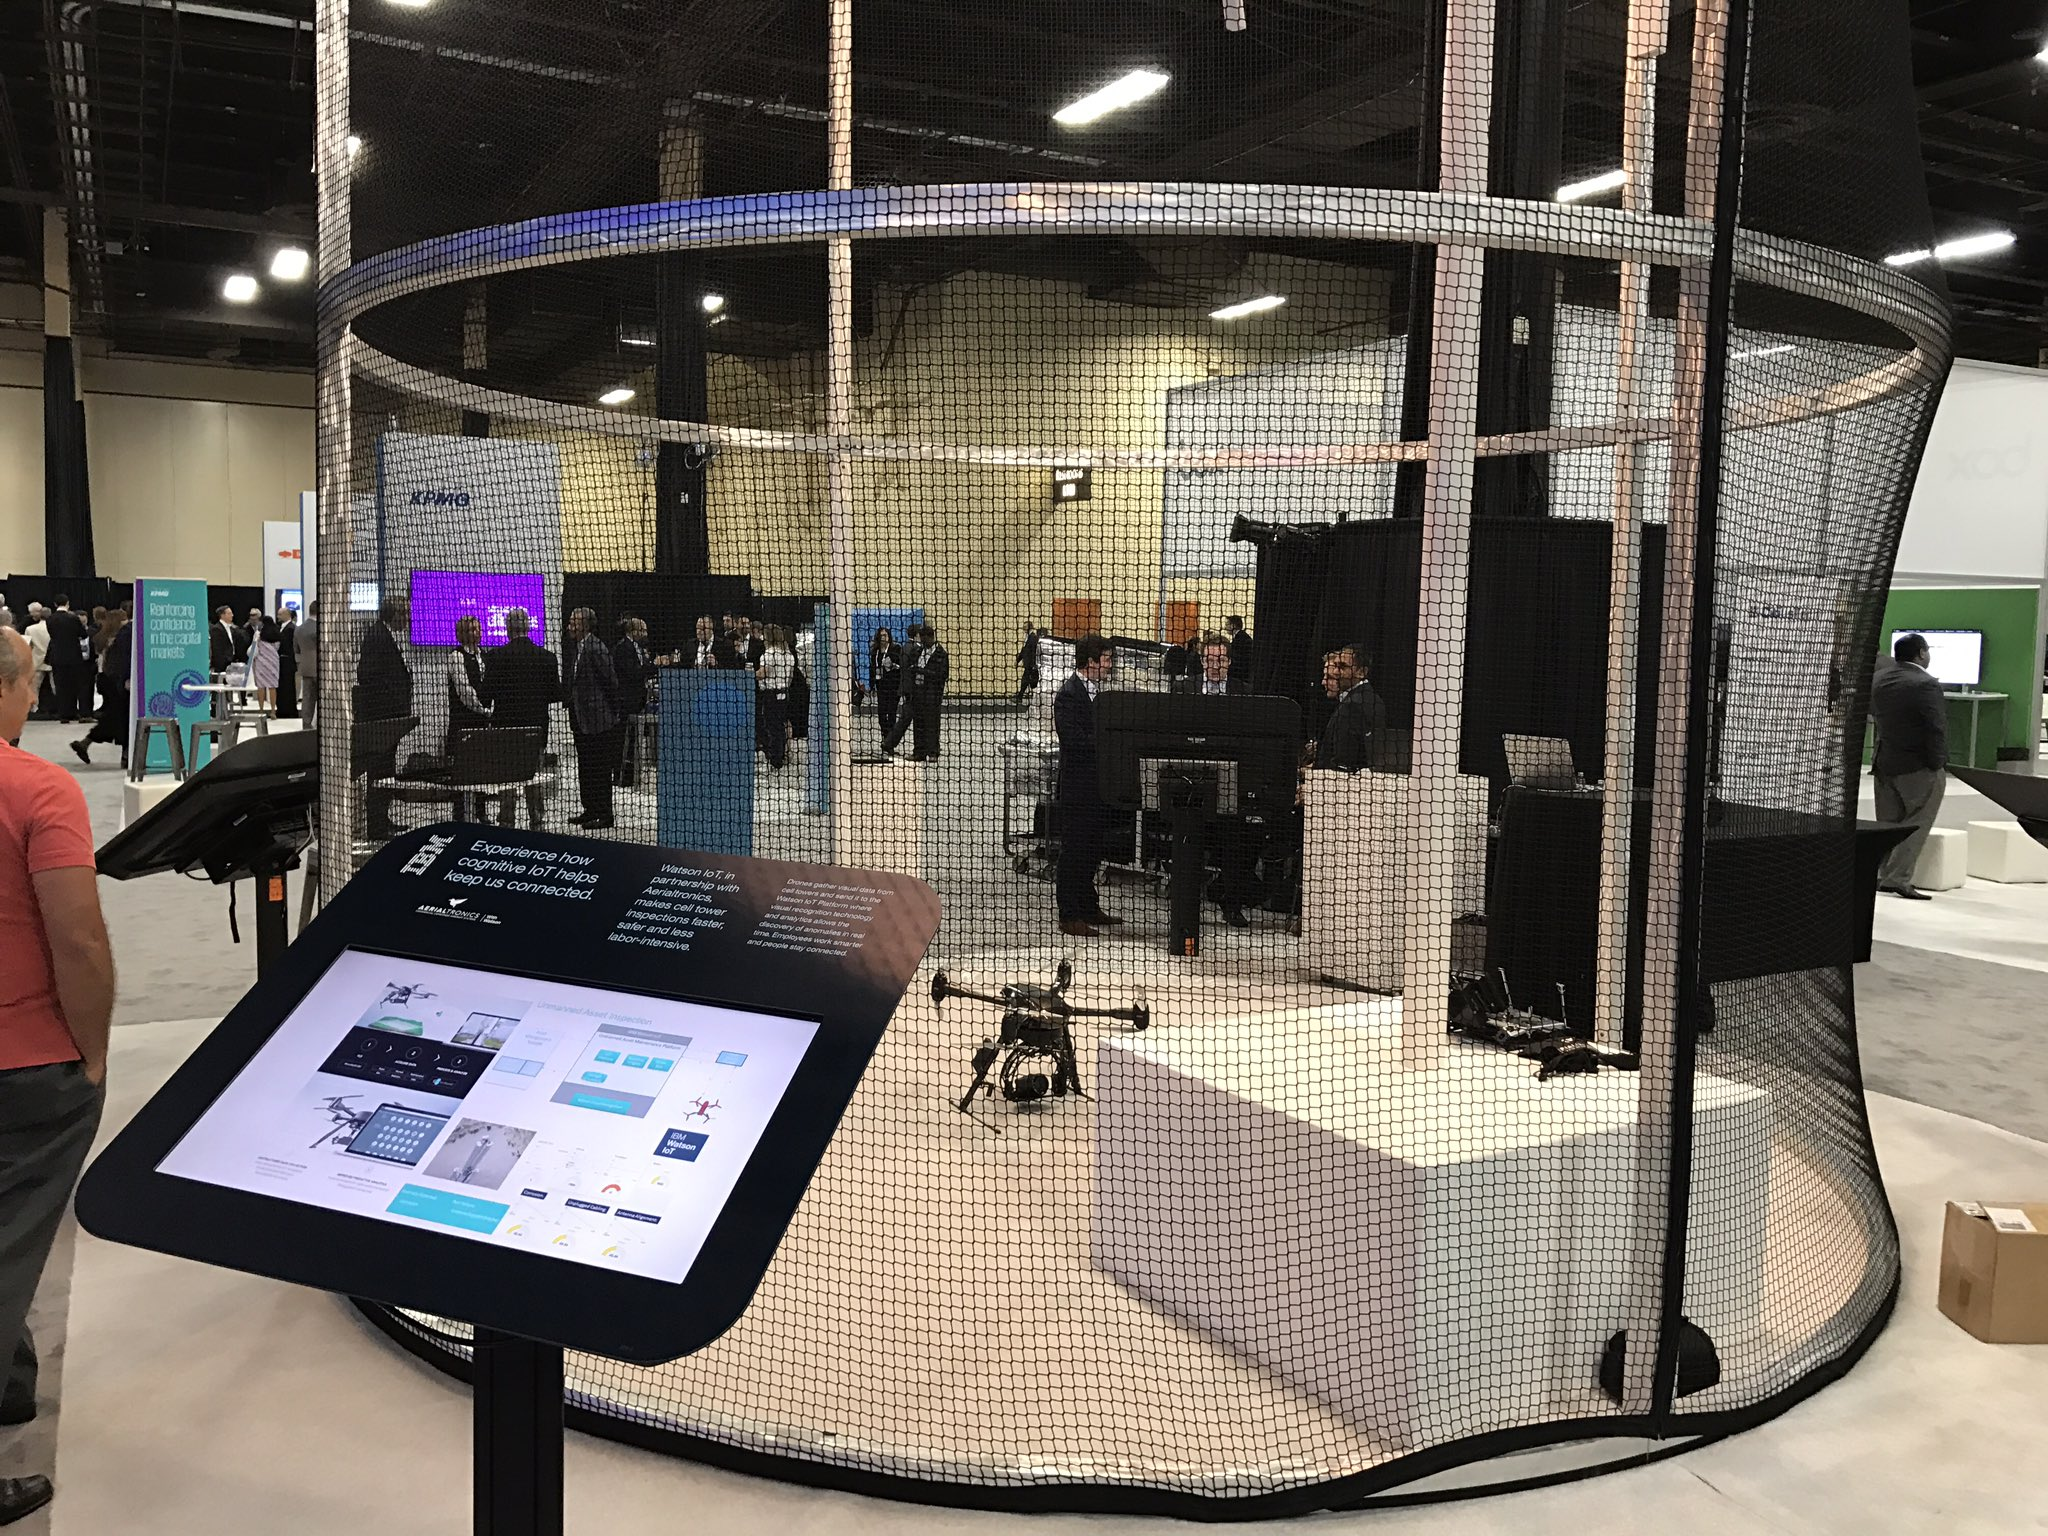 No contemporary #tech event, especially with #IoT prominent in the program, can not have an indoor #drone cage. #ibmwow https://t.co/jnLL4qrhXN